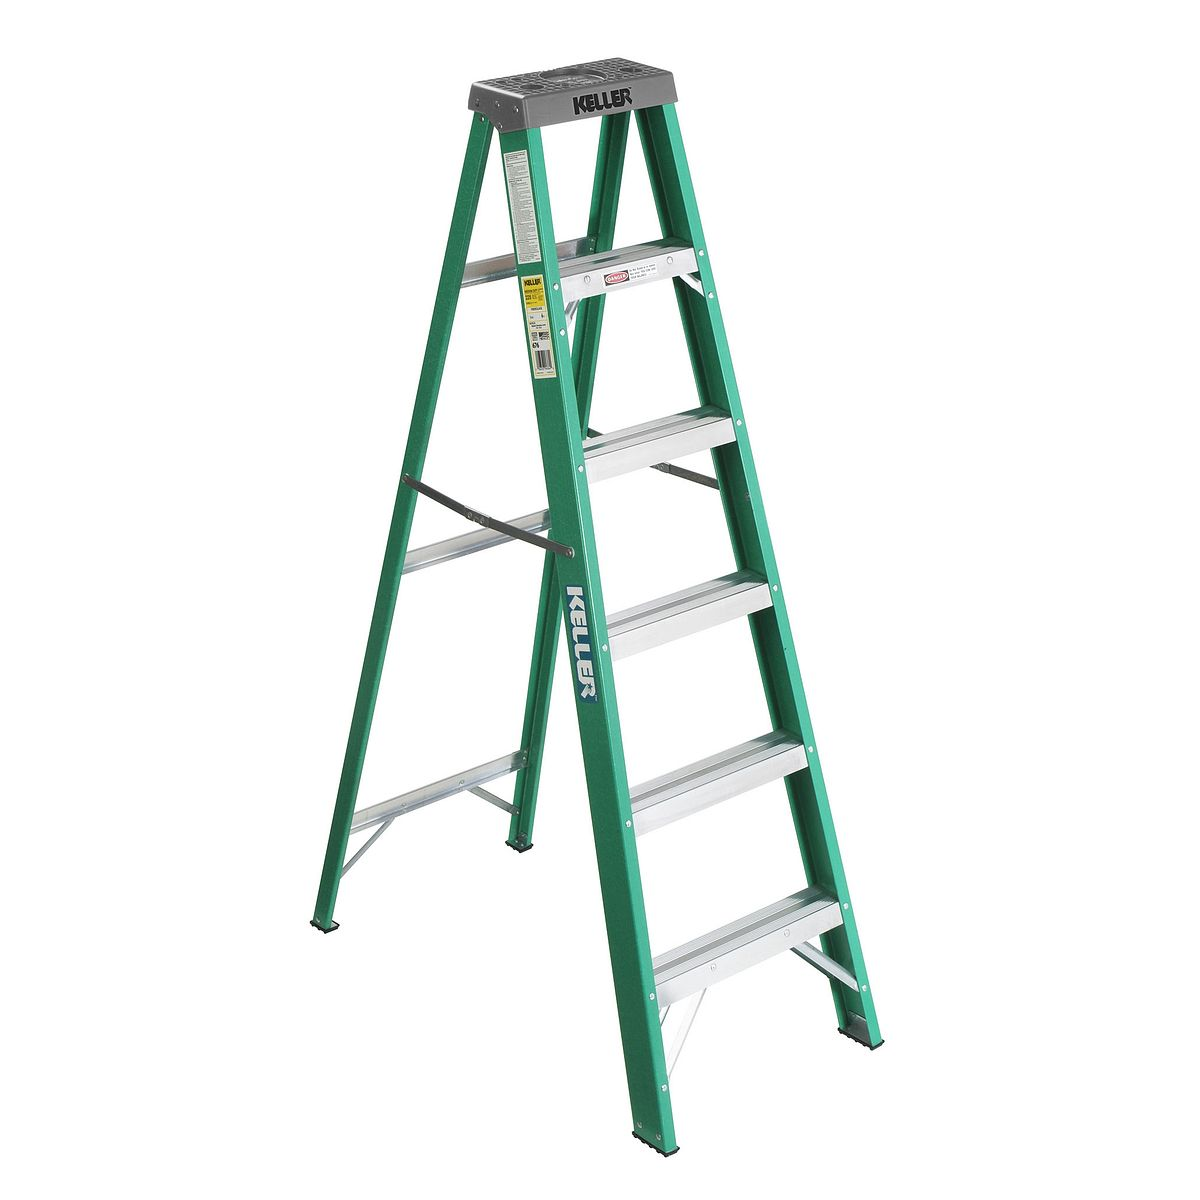 676 Step Ladders Keller Us